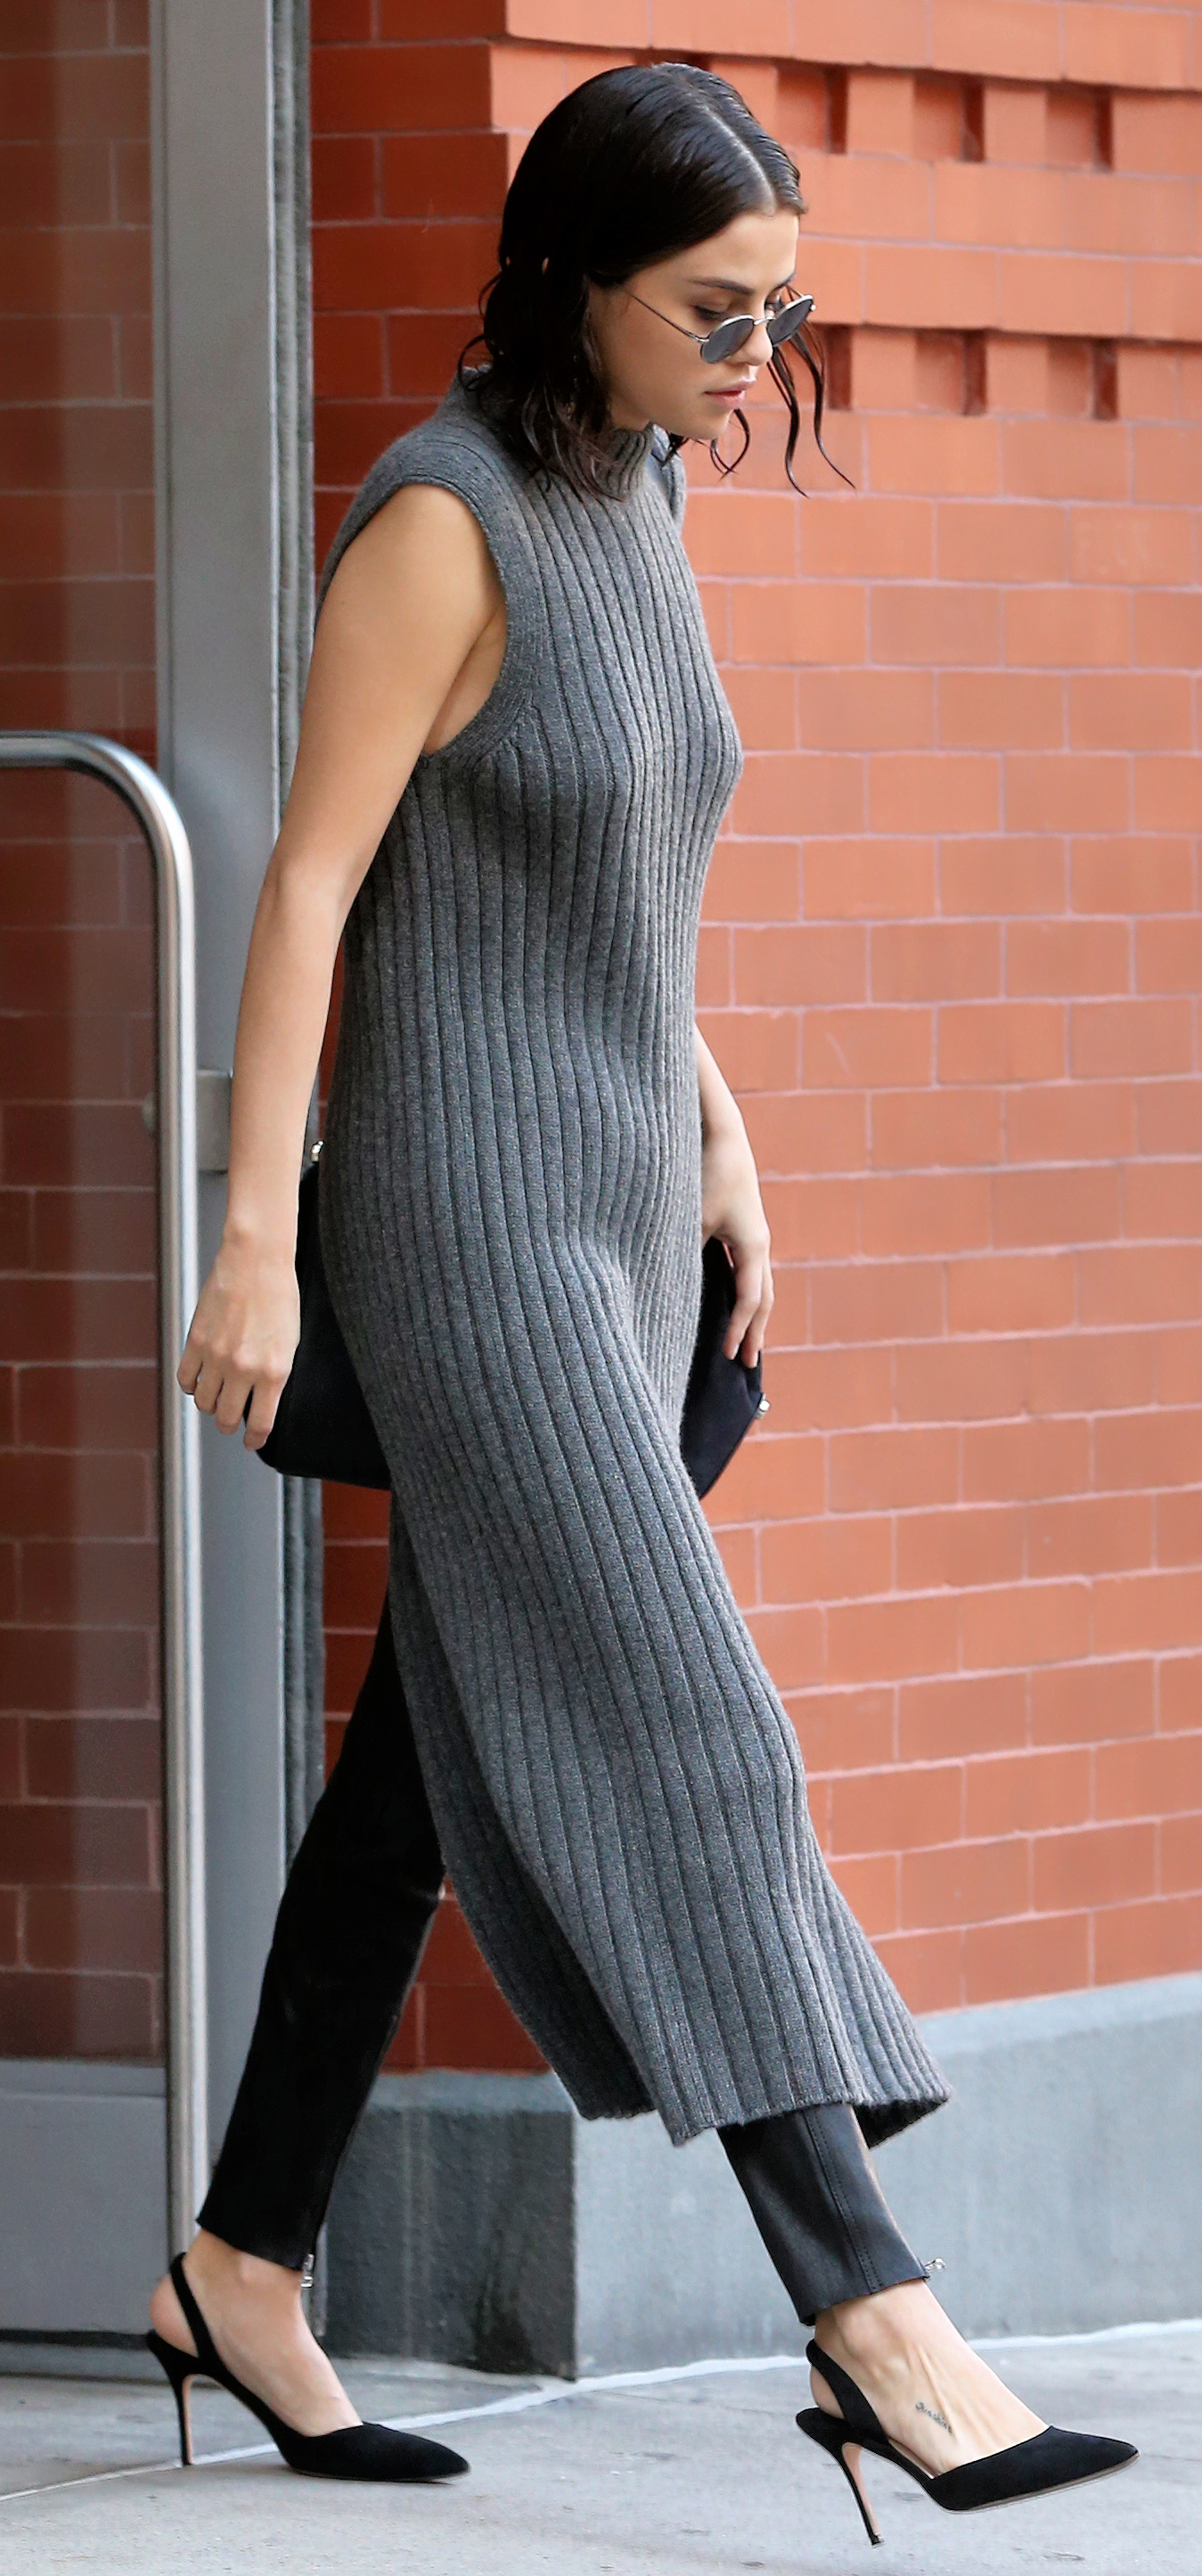 EXCLUSIVE: Singer Selena Gomez, wearing a full-length grey sweater dress, black leather pants and slingback pumps, is spotted leaving her apartment in New York City, New York, USA. <P> Pictured: Selena Gomez <B>Ref: SPL1606953  221017   EXCLUSIVE</B><BR/> Picture by: Christopher Peterson/Splash News<BR/> </P><P> <B>Splash News and Pictures</B><BR/> Los Angeles:310-821-2666<BR/> New York:212-619-2666<BR/> London:870-934-2666<BR/> <span id=